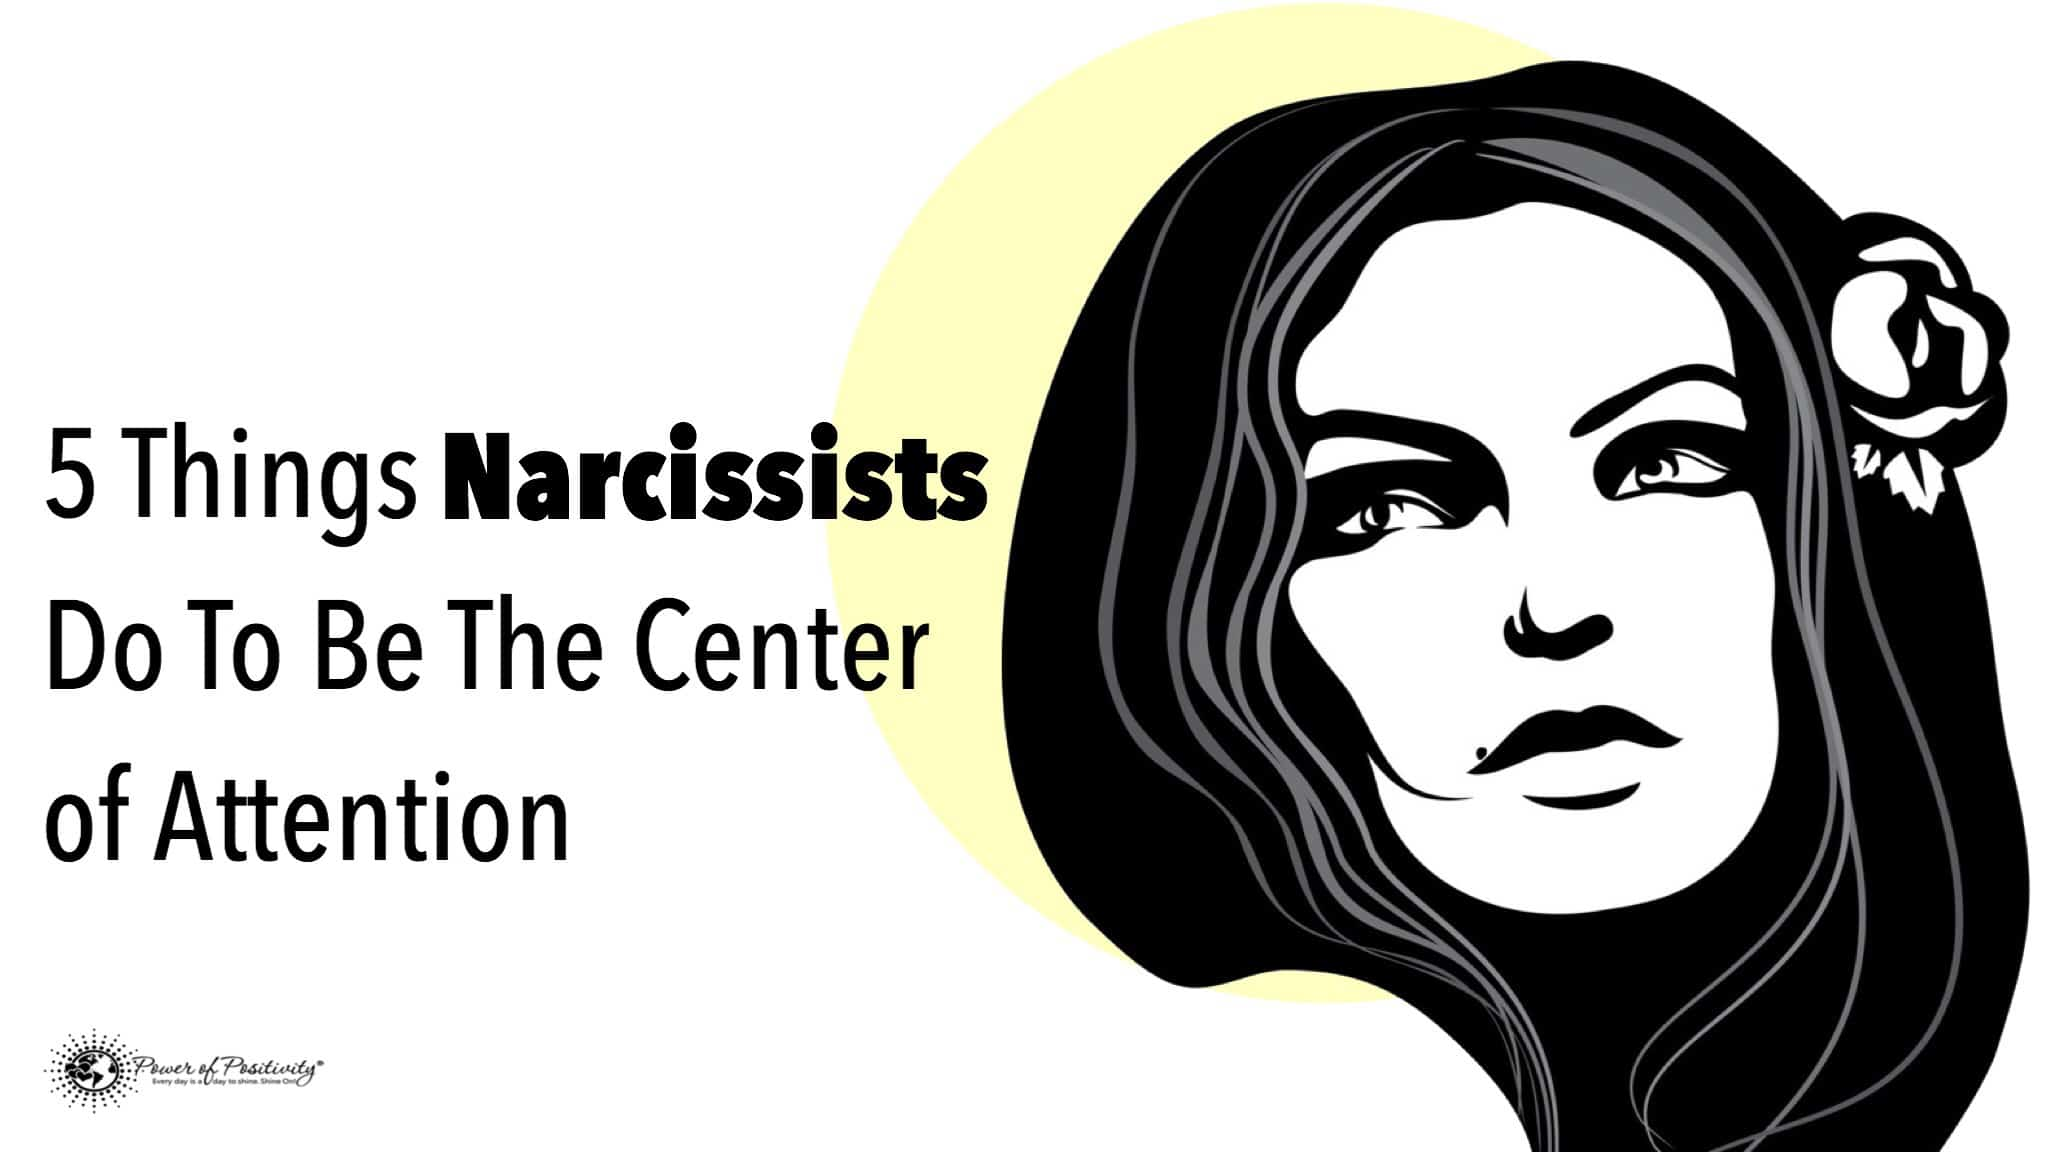 5 Things Narcissists Do To Be The Center of Attention